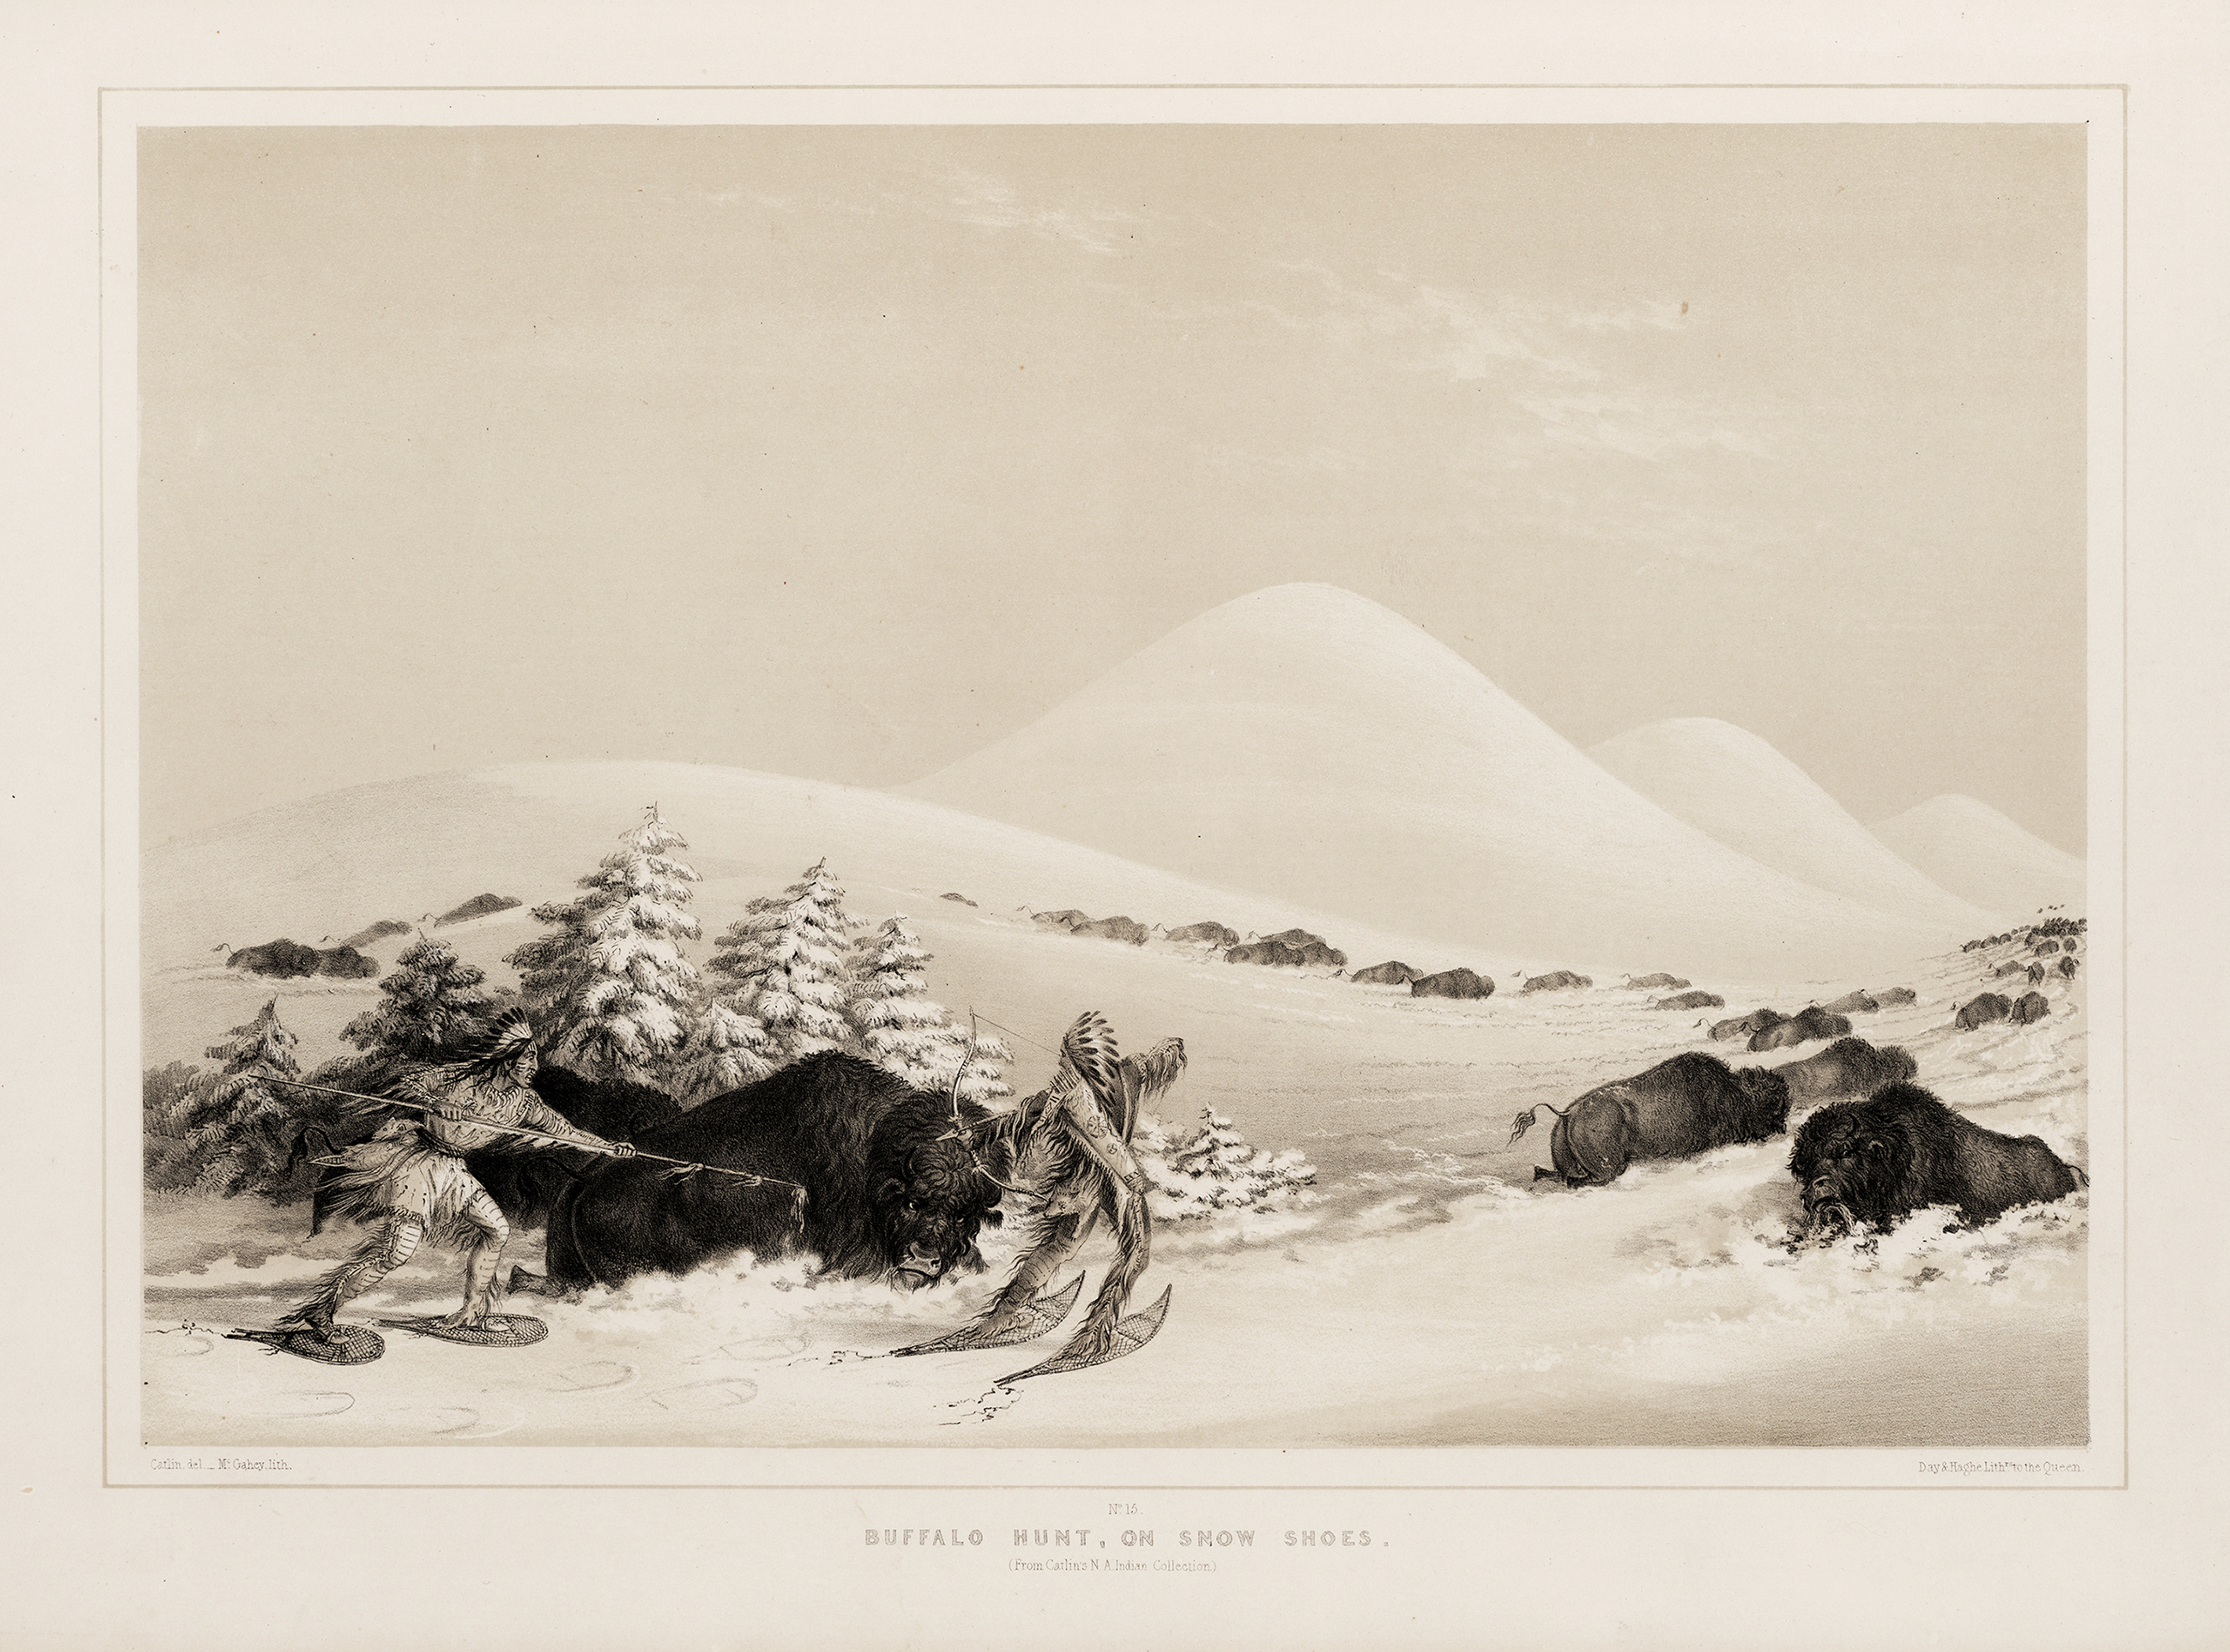 Buffalo Hunt, on Snowshoes